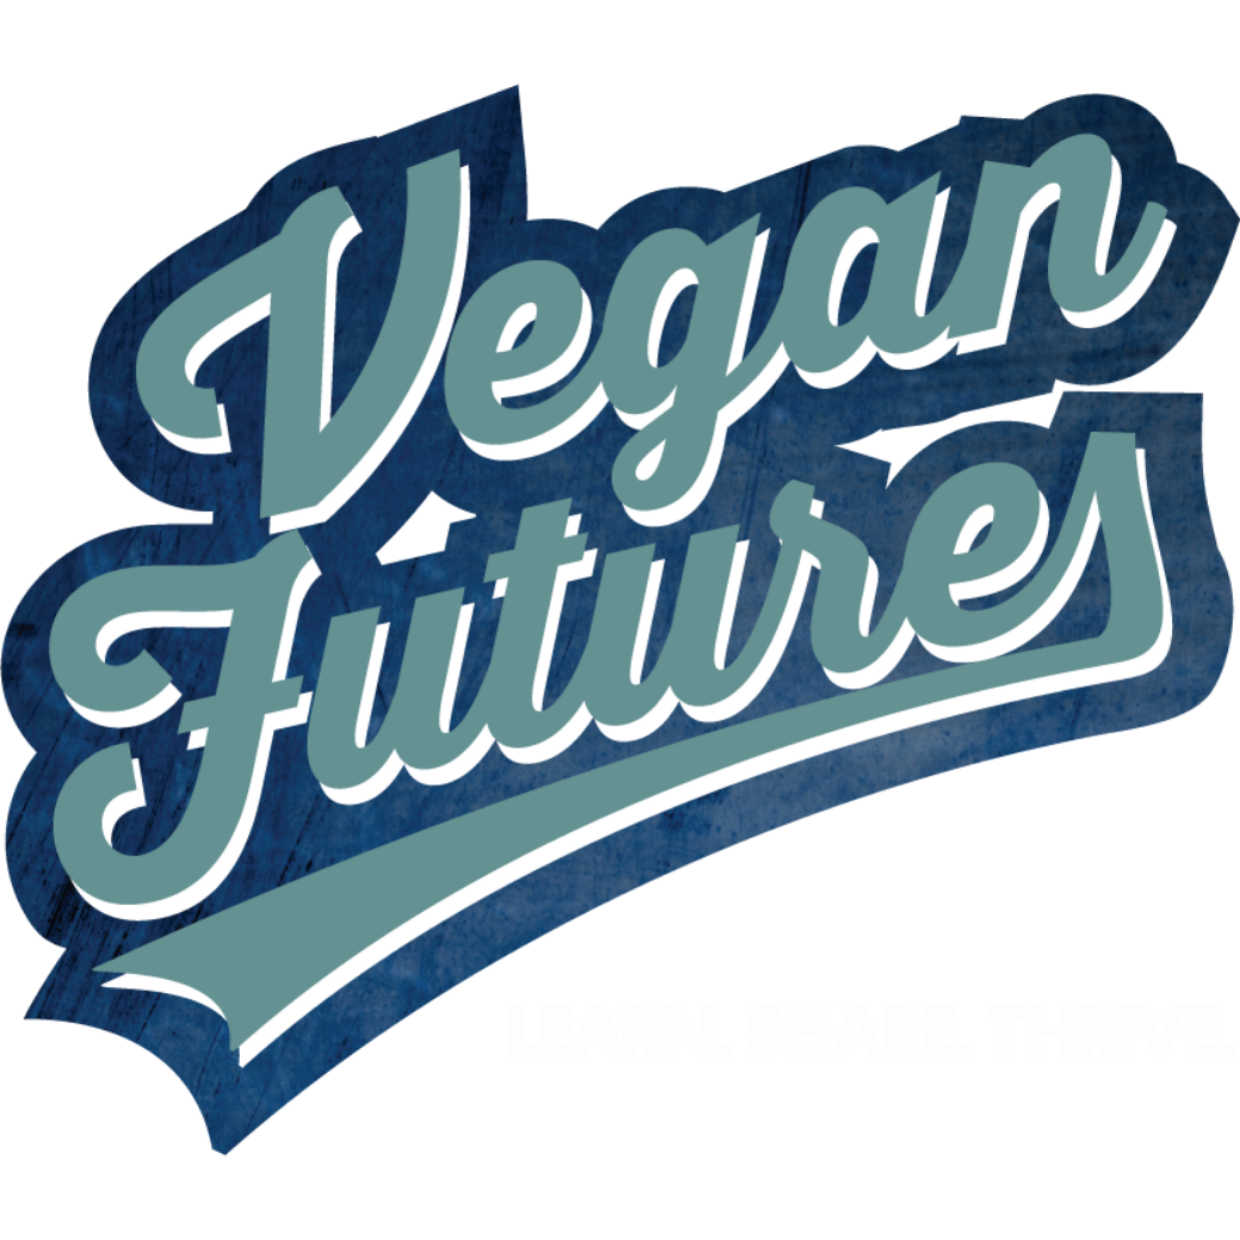 Vegan Futures